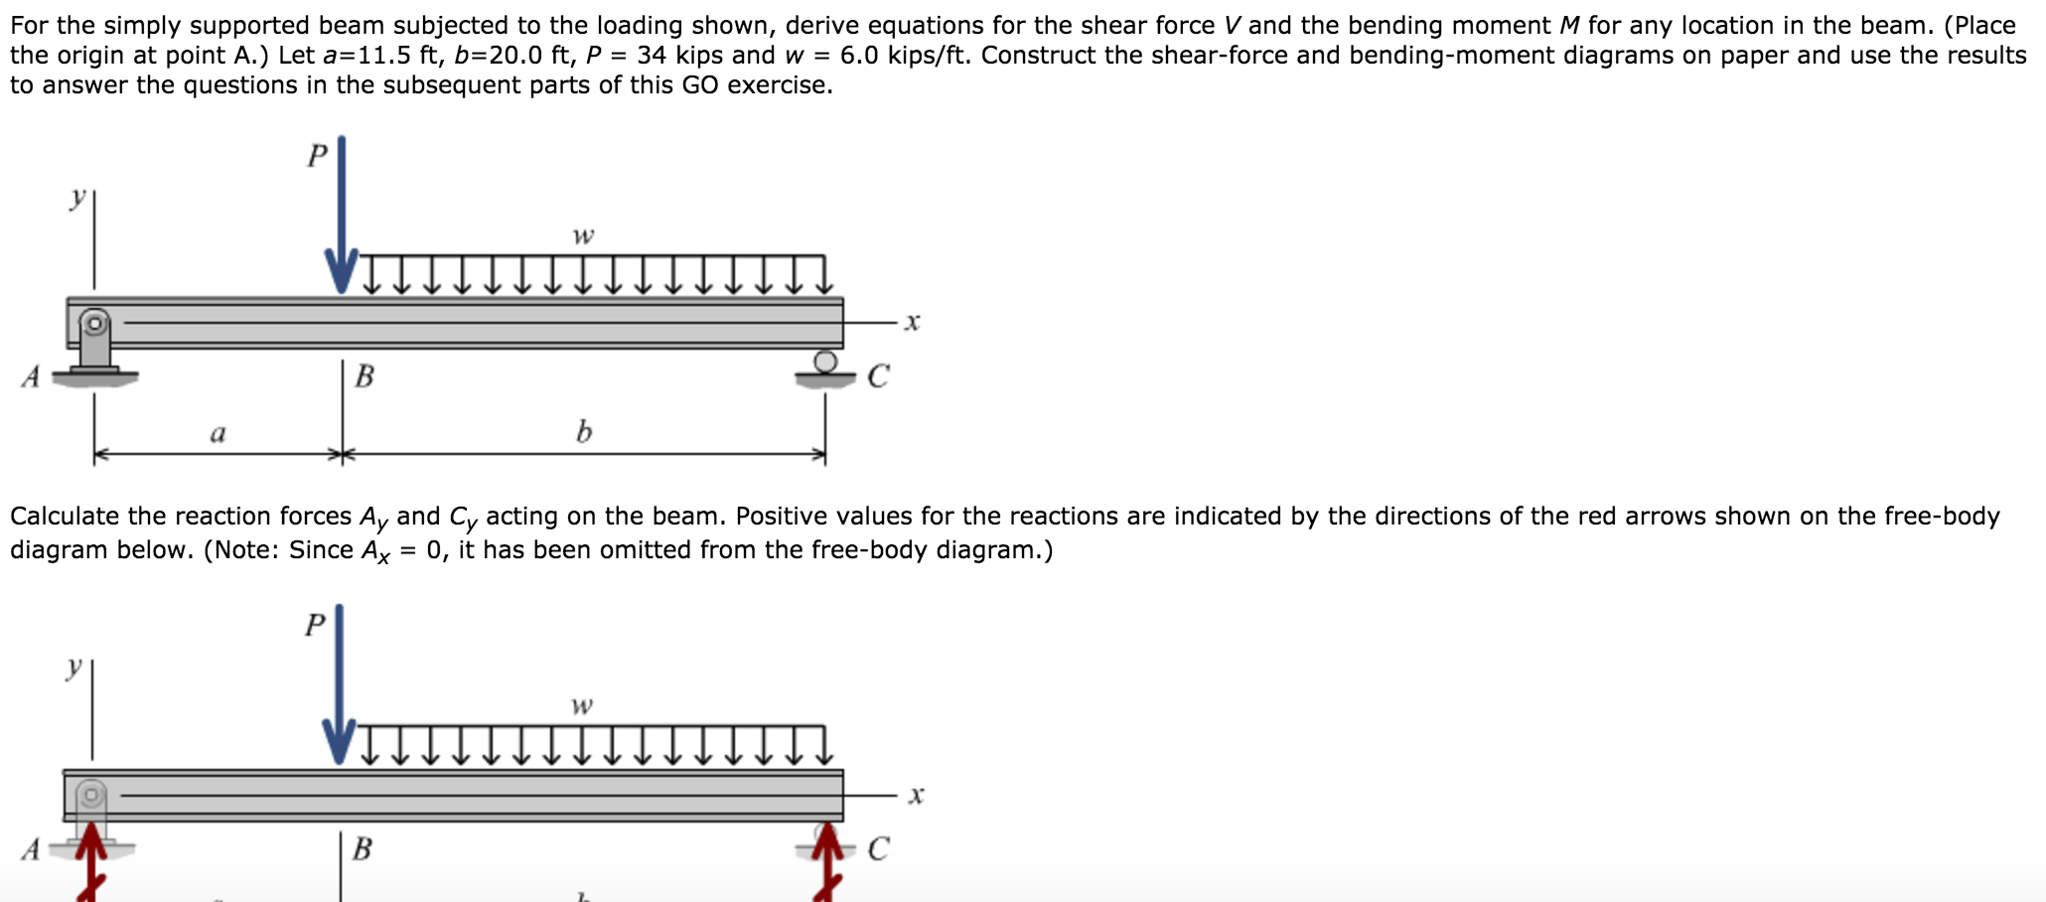 Bending Moment Diagram Equations Padastructure Section 5 Shear For The Simply Supported Beam Subjected To Loading Shown Derive